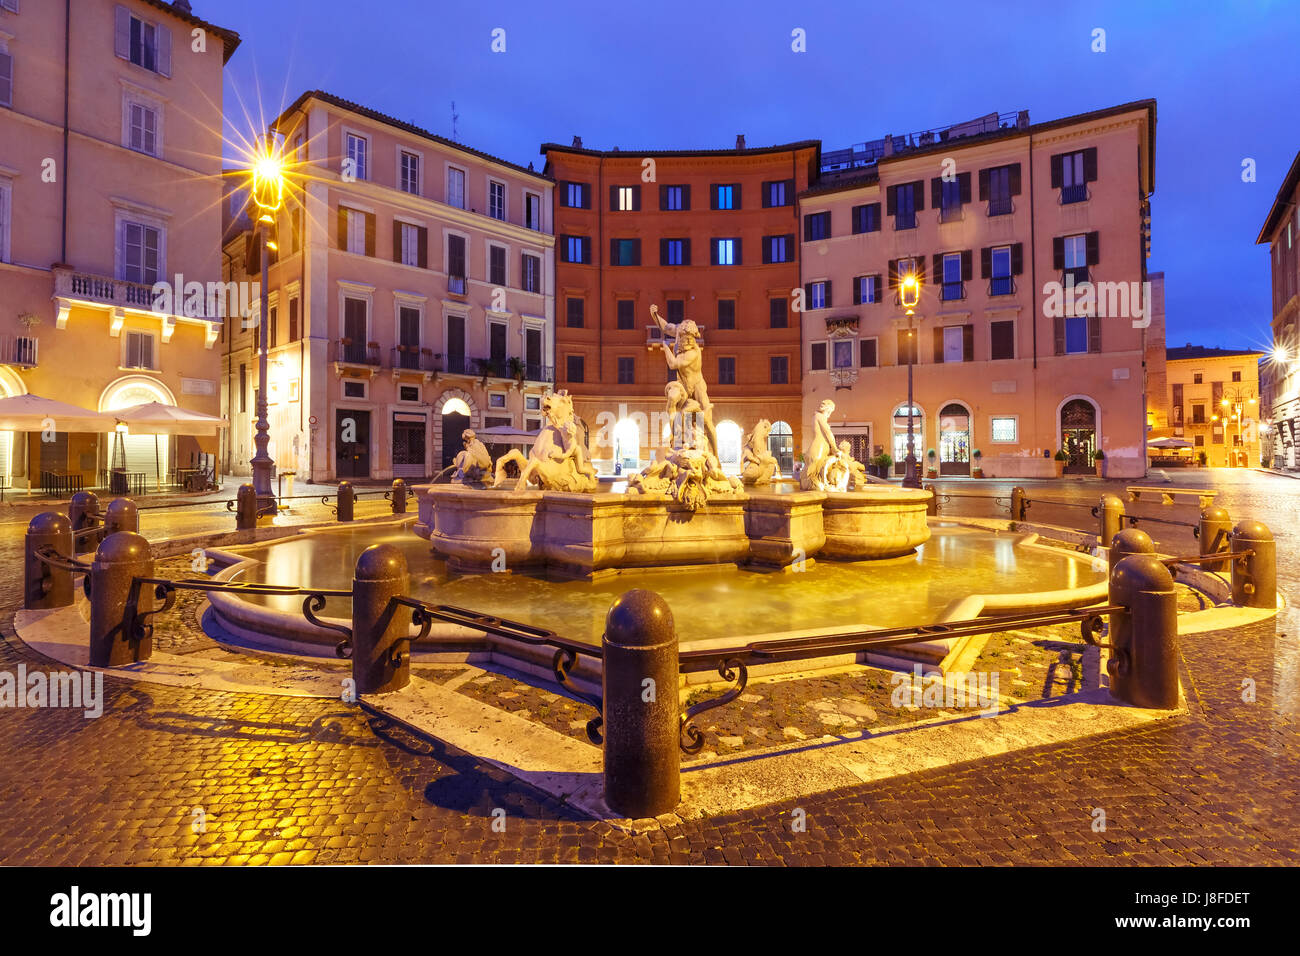 Piazza Navona Square at night, Rome, Italy. - Stock Image